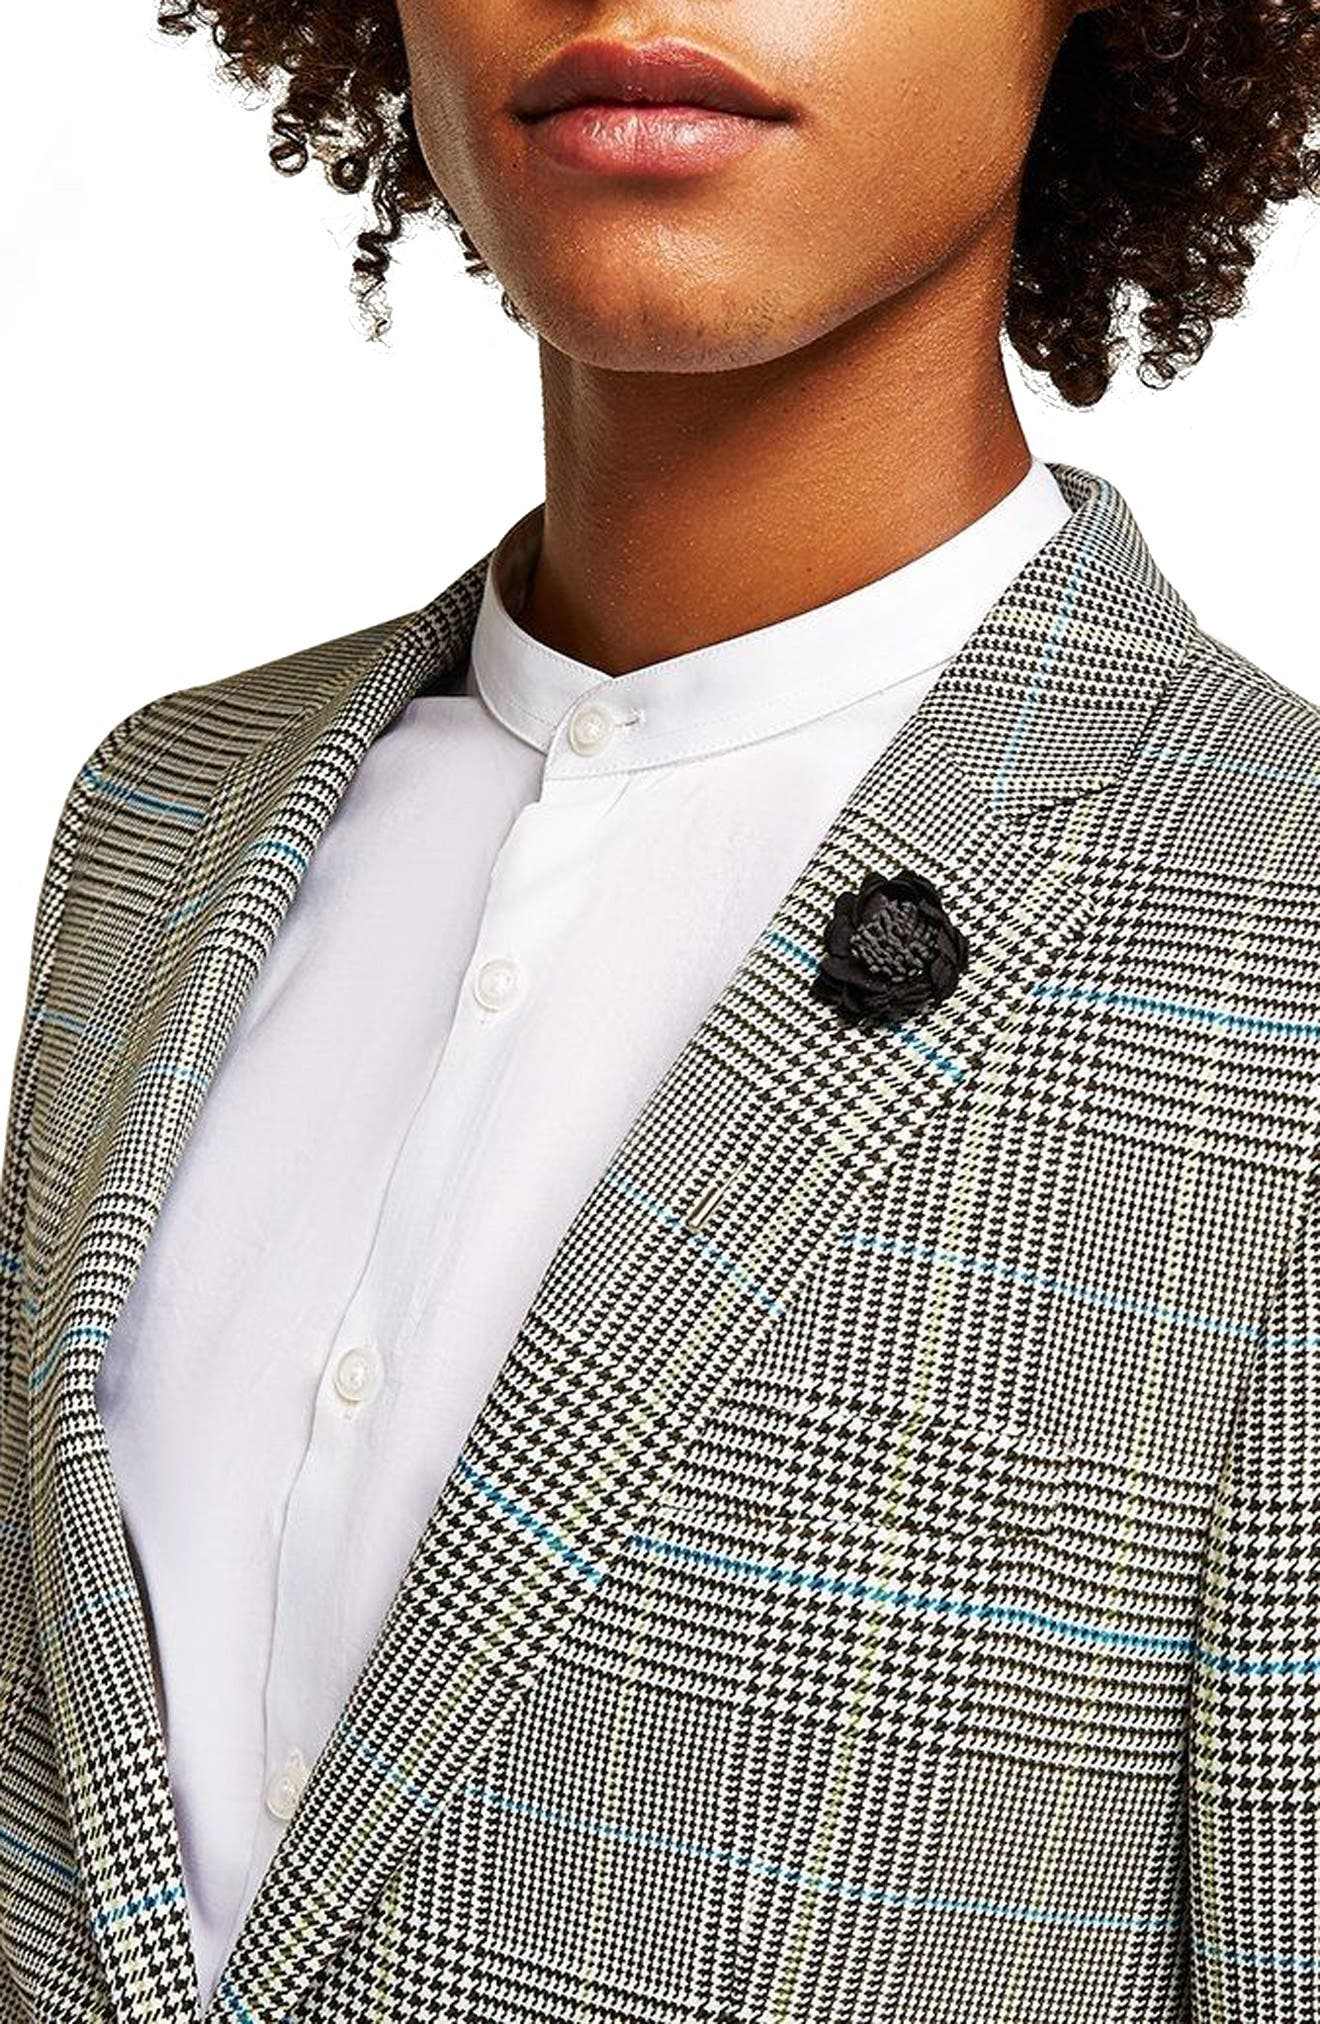 Skinny Fit Houndstooth Suit Jacket,                             Alternate thumbnail 3, color,                             GREY MULTI